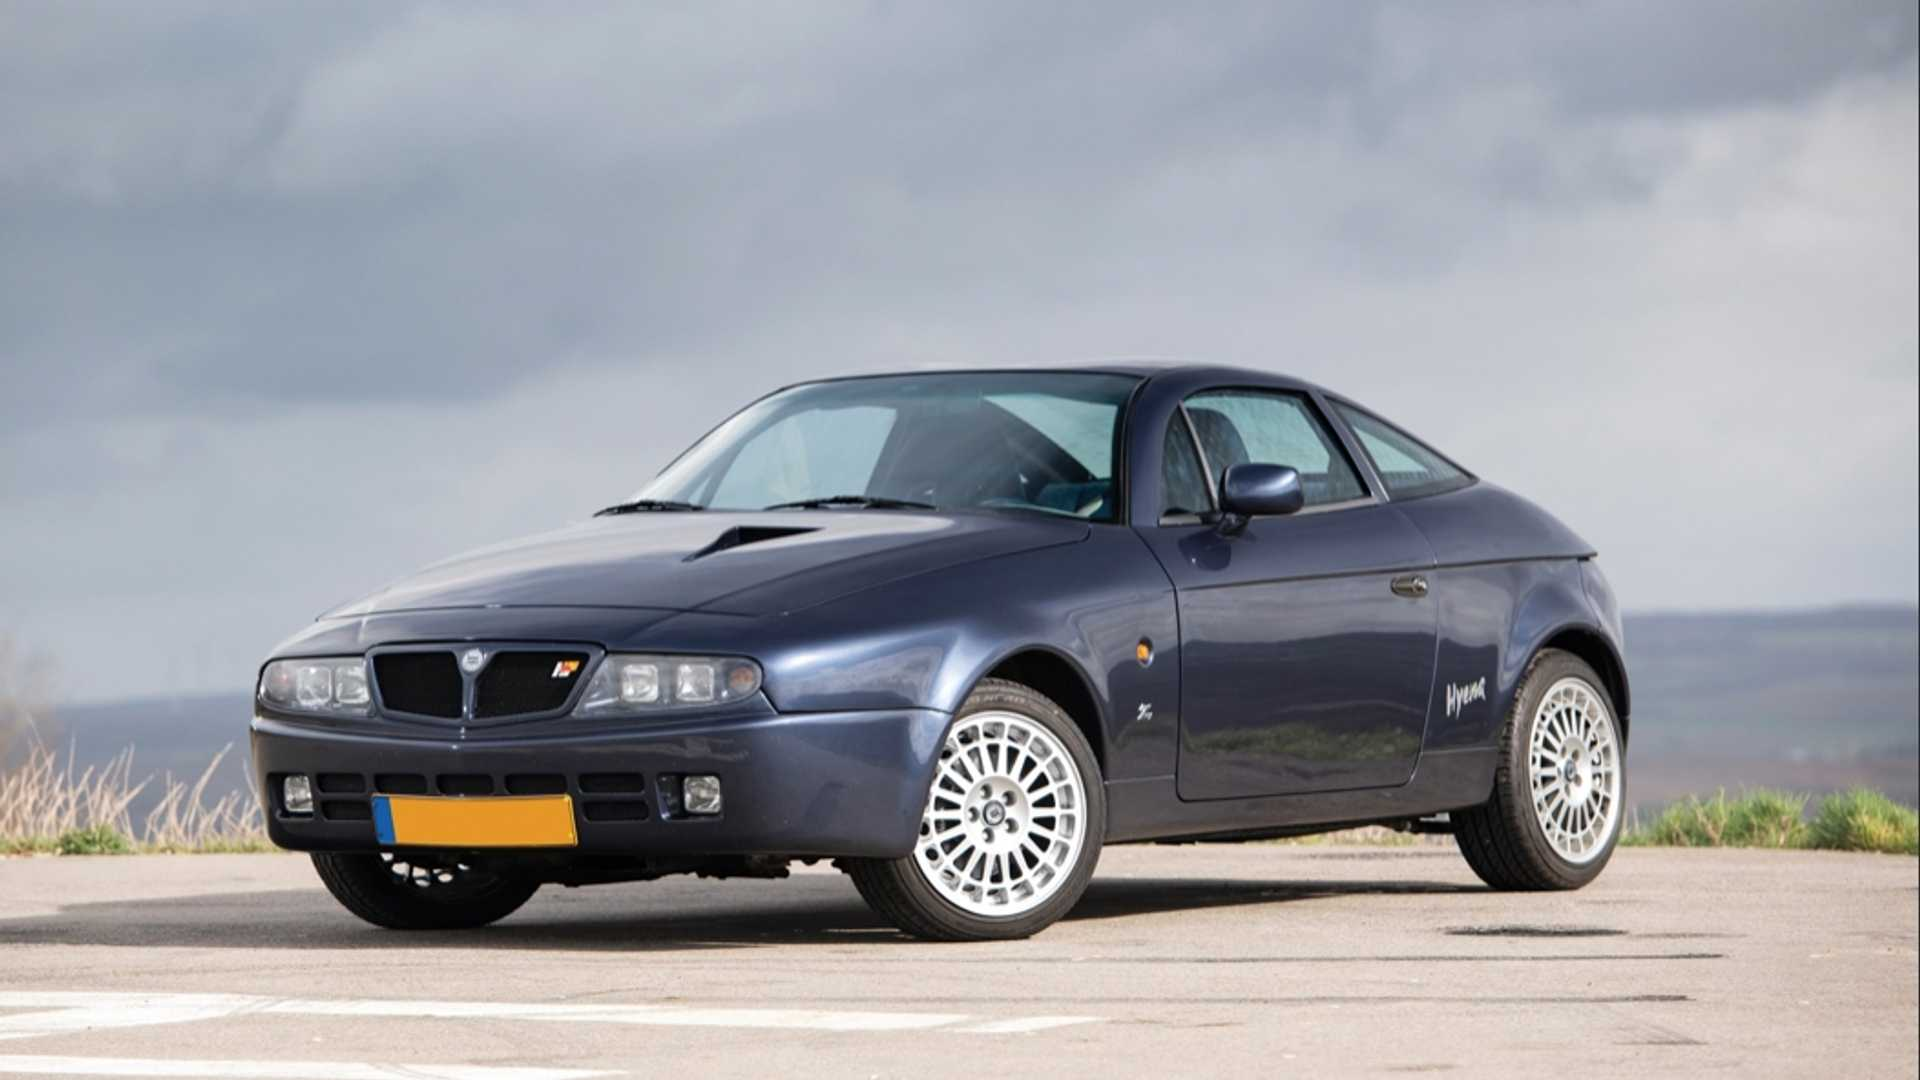 Rare Lancia Hyena By Zagato Based On Delta Integrale Can Be Yours